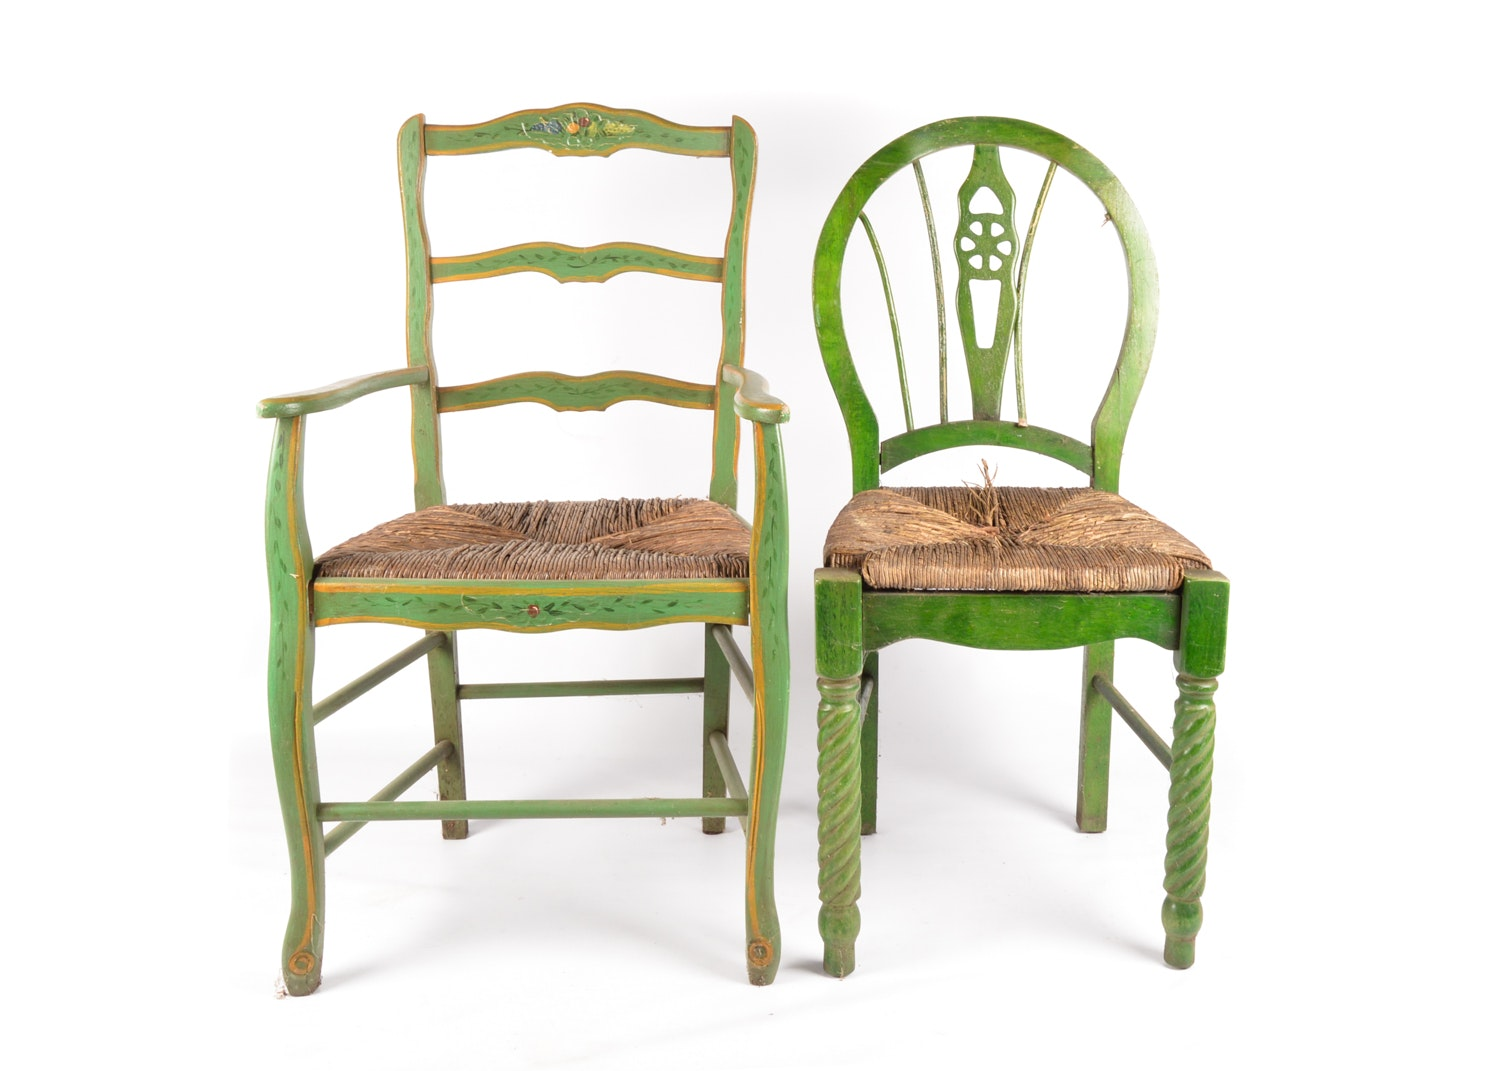 Painted Wooden Ladder Back and Wheelback Rush Seat Chairs, 20th Century